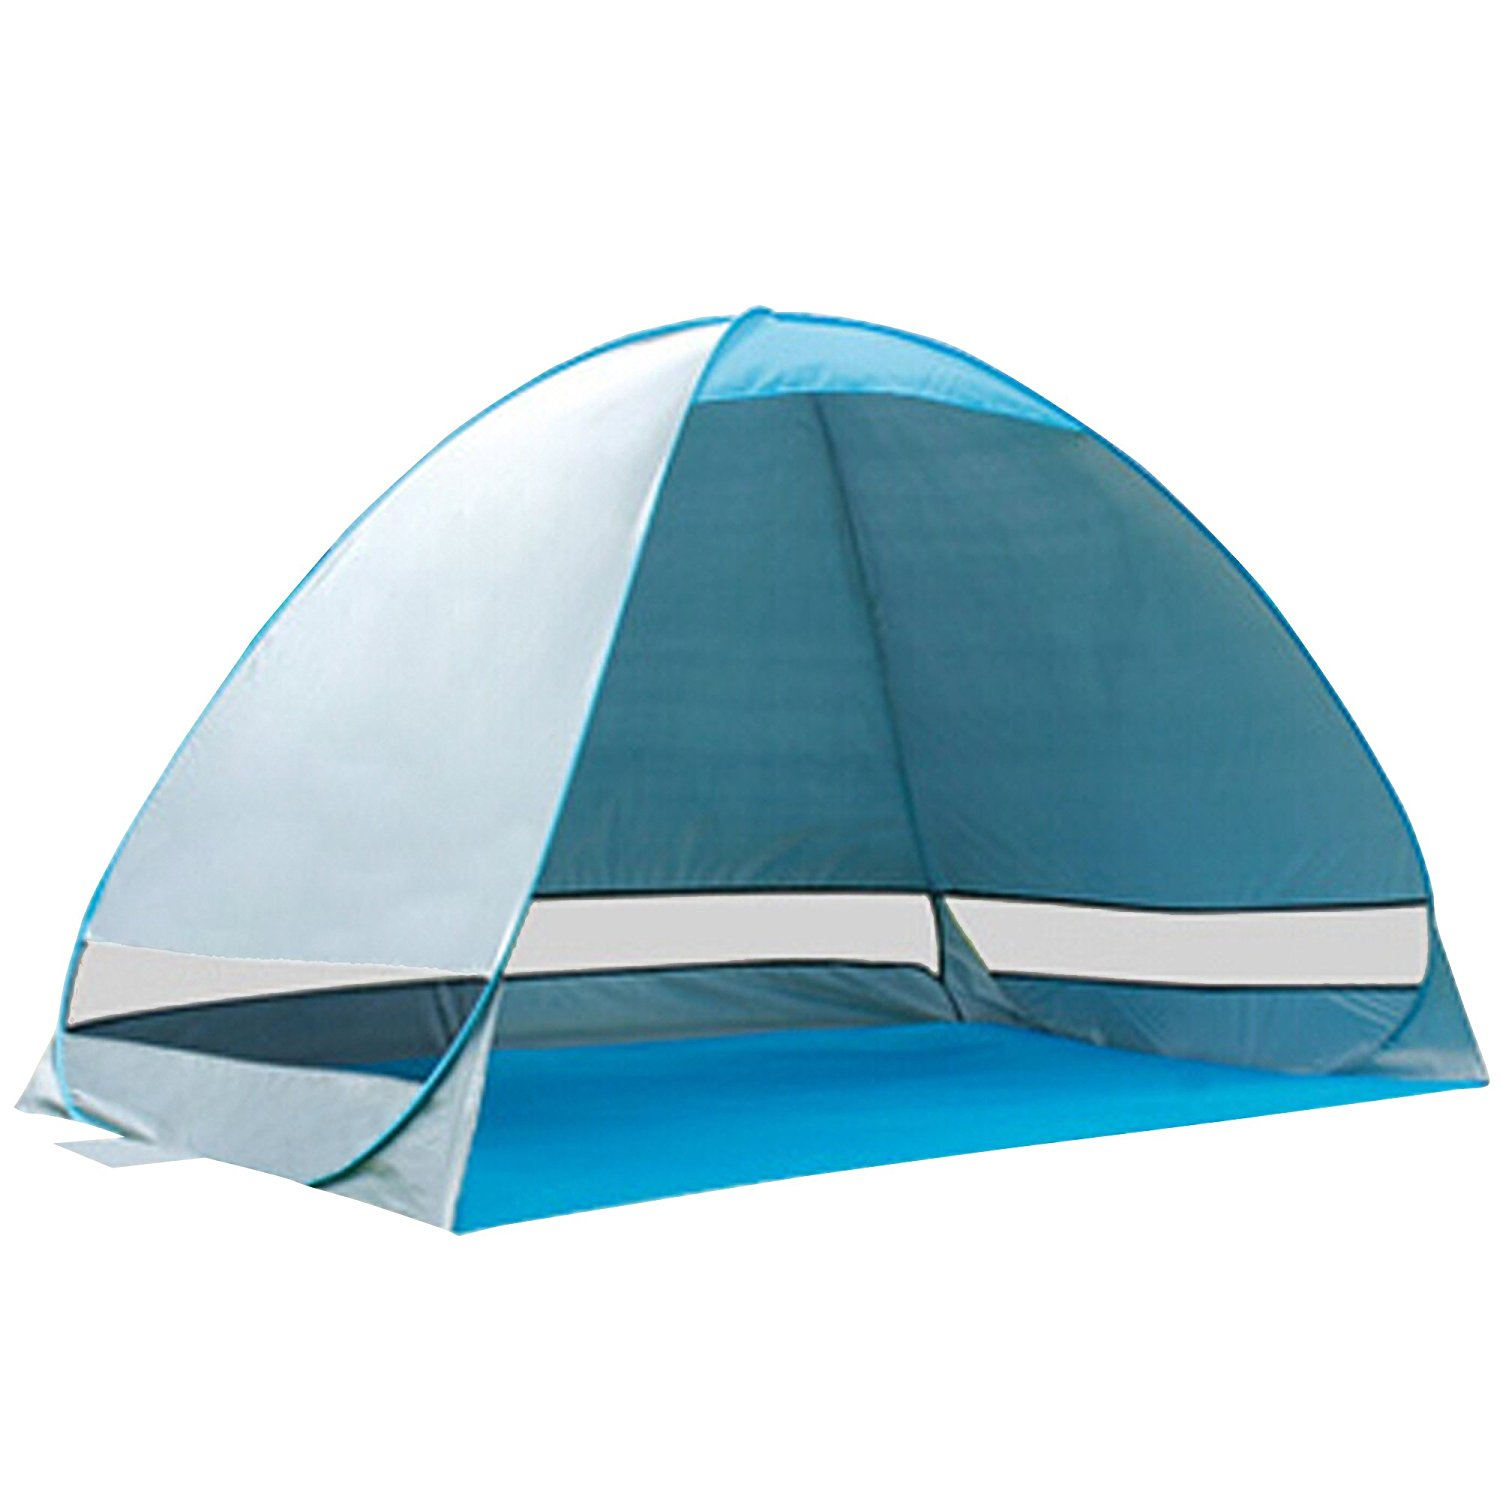 Instant Pop Up Portable Beach Tent Canopy UV Sun Shade Shelter Outdoor Camping Fishing Cabana Mesh 190T by